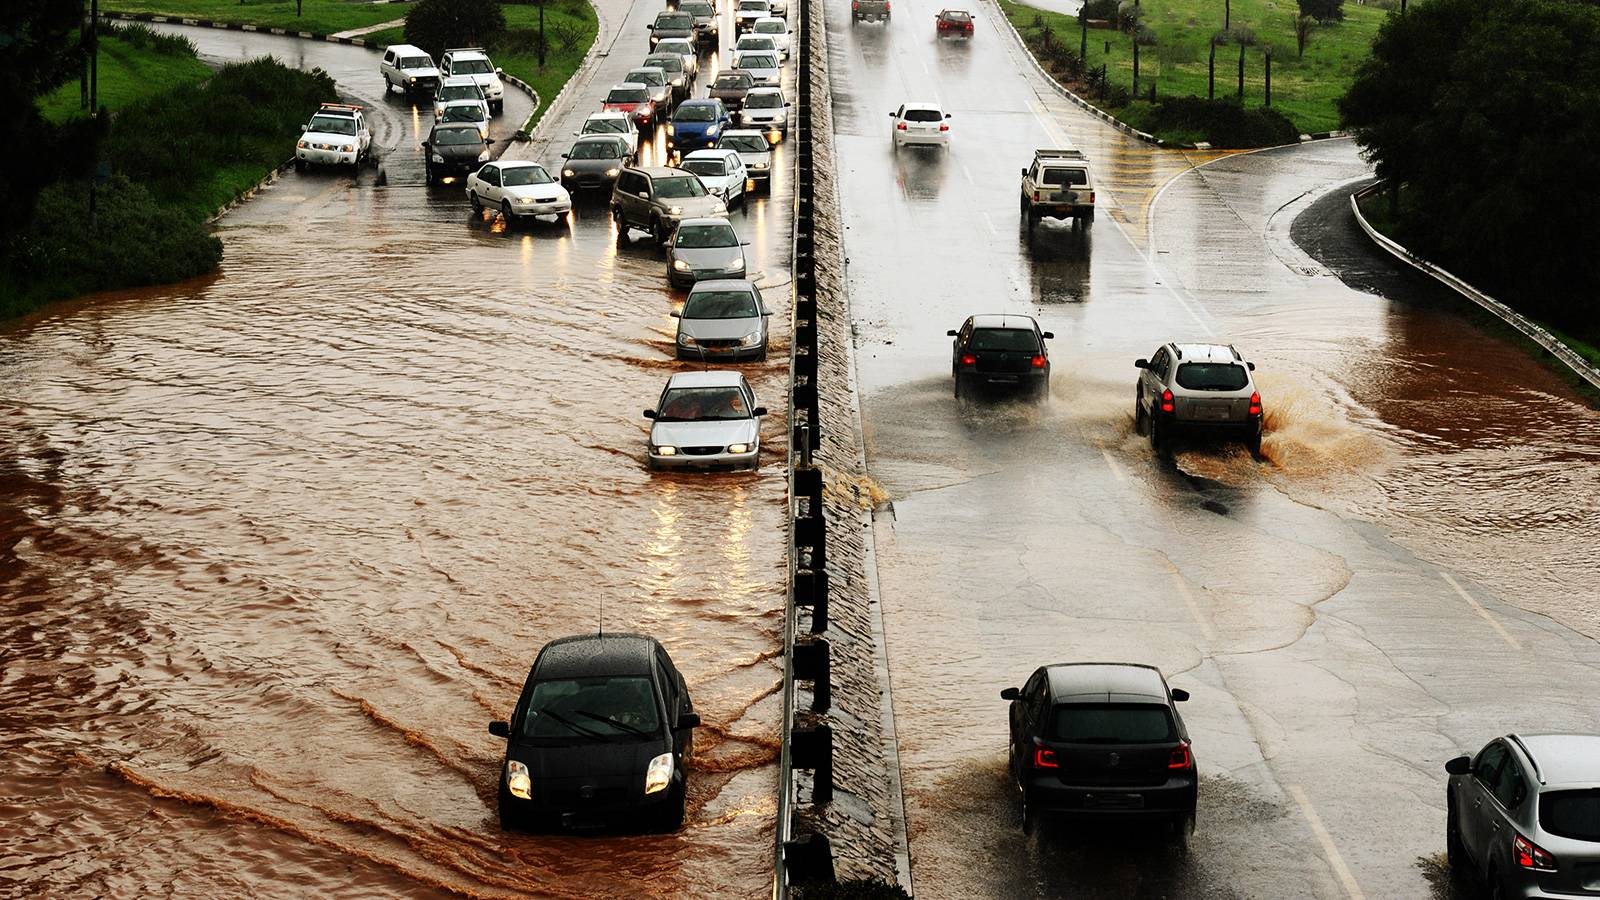 Cars driving through a flooded highway